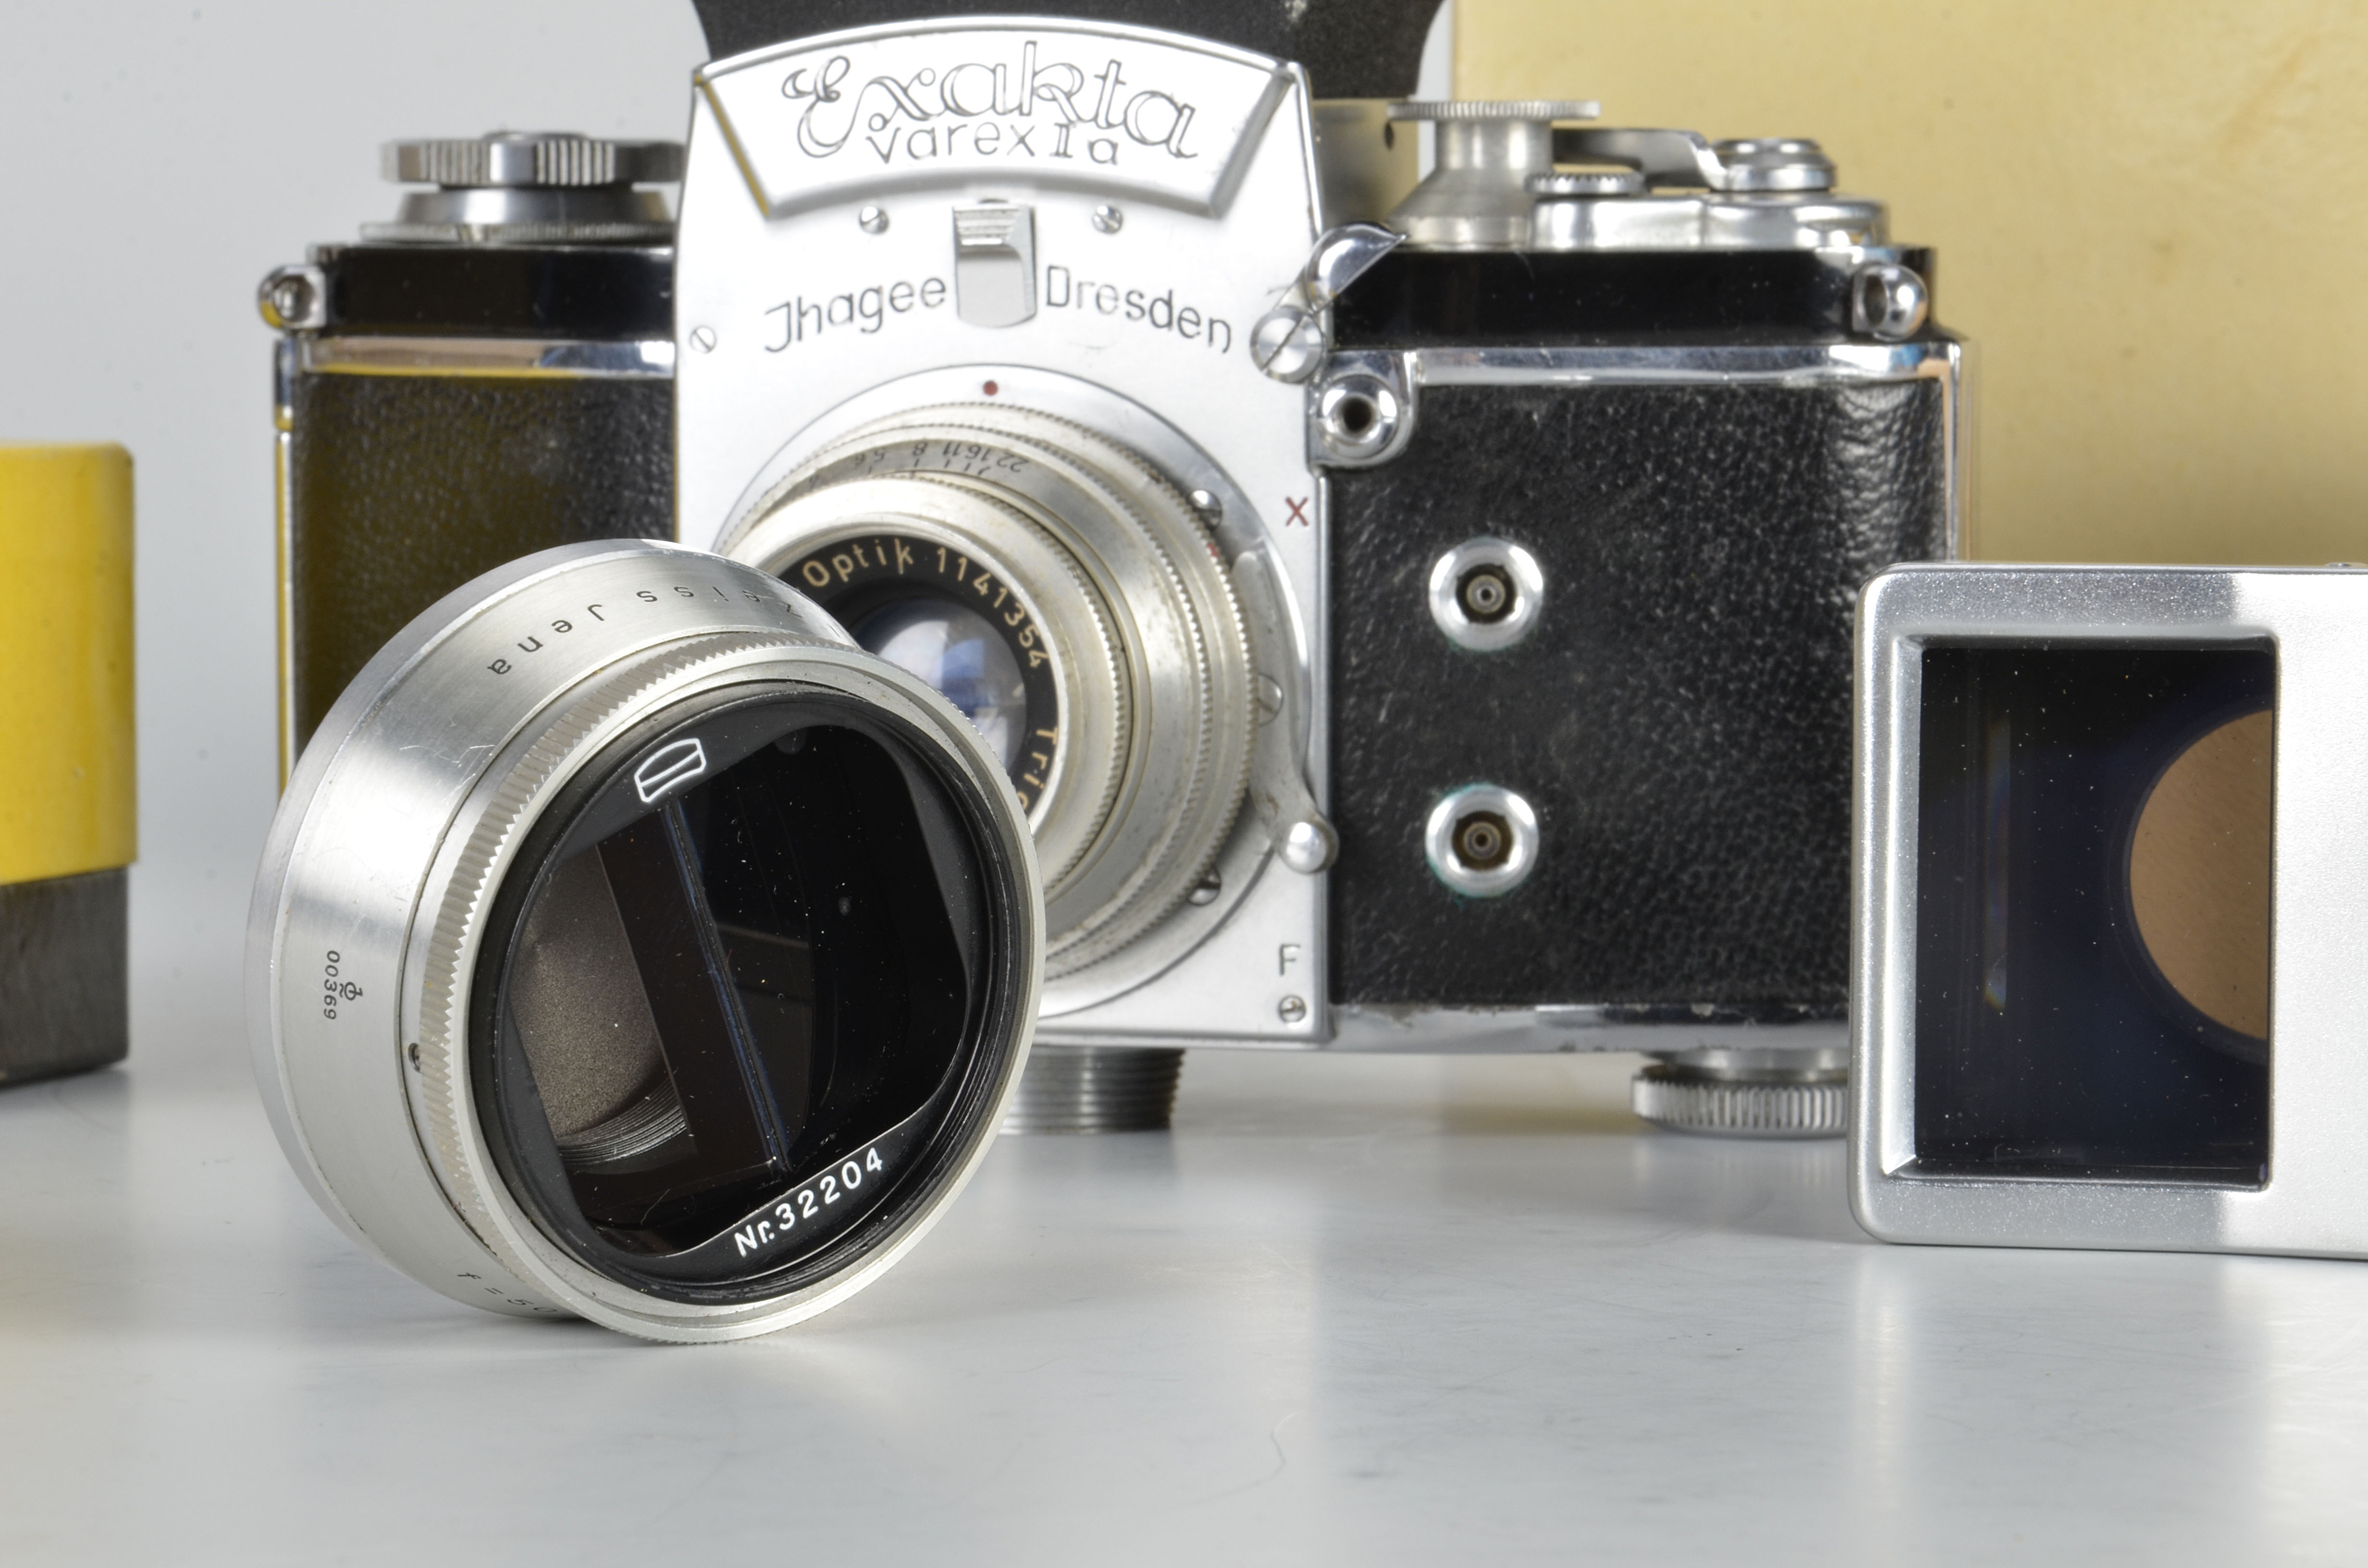 An Ihagee Exakta Varex VX Stereflex Camera, chrome, serial no. 820975, with Meyer-Optik Trioplan f/ - Image 2 of 2